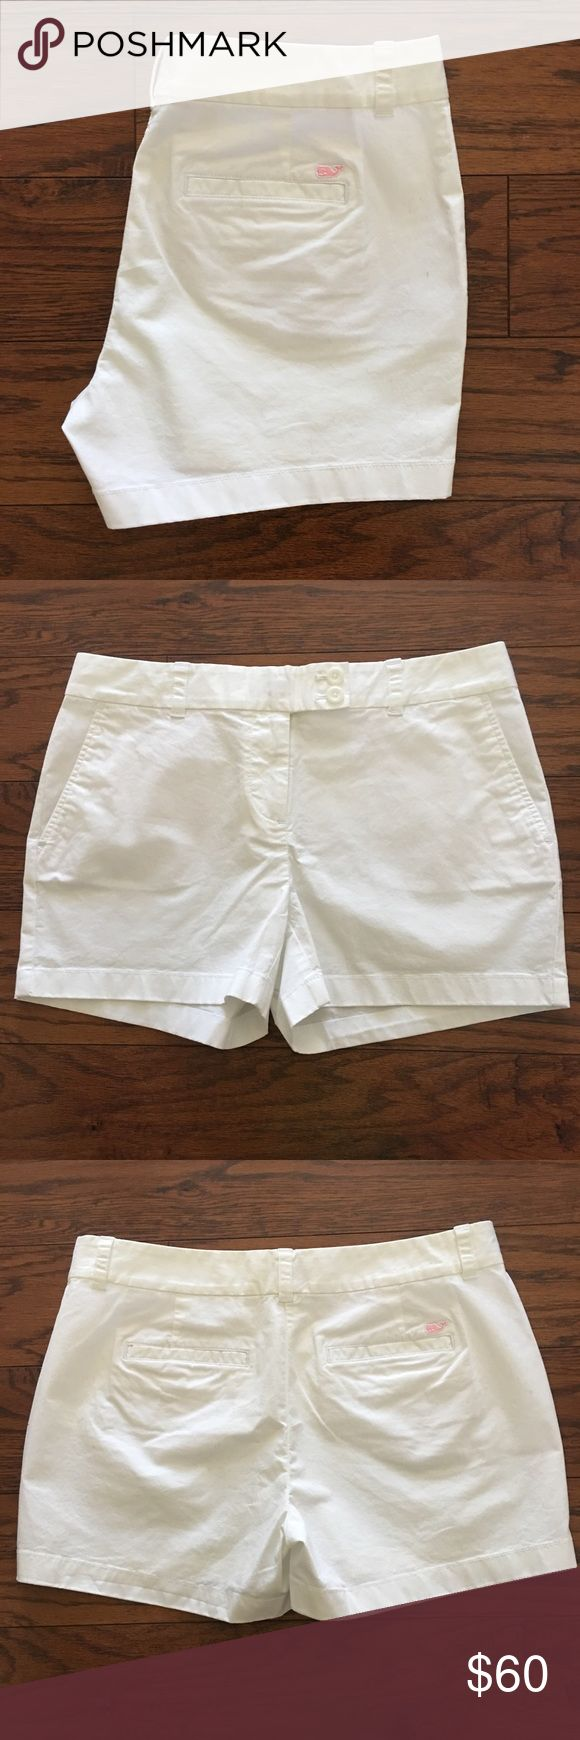 Vineyard Vines Dayboat Shorts New Without Tags✨ Machine washable / Tumble Dry 96 % Cotton / 4 % Spandex 3.5 inch inseam Comfortable material NOT from the outlet Vineyard Vines Shorts